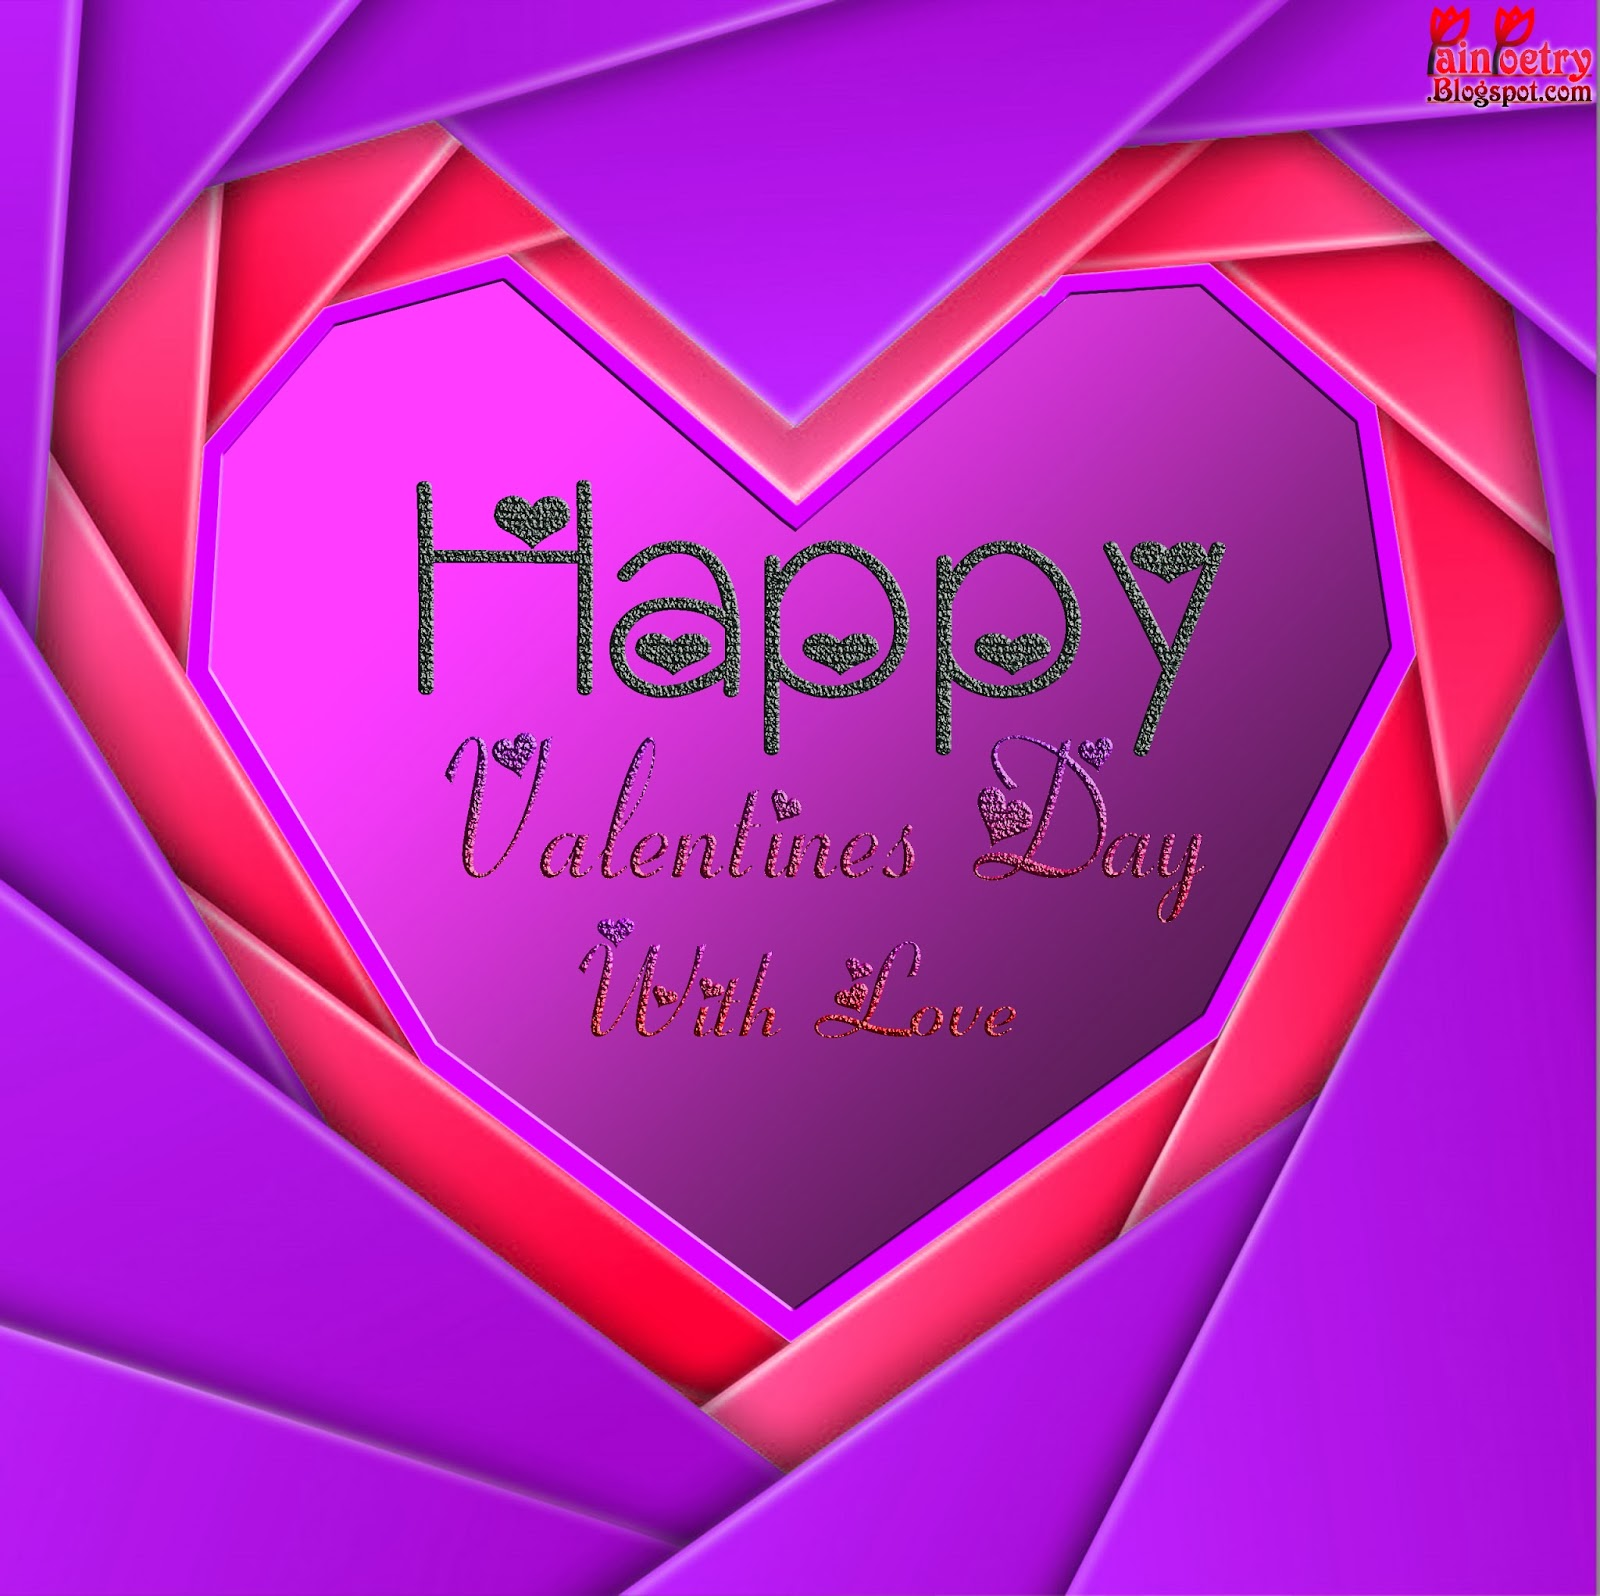 Happy-Valentines-Day-Heart-Wishes-Messages-Image-HD-Wide